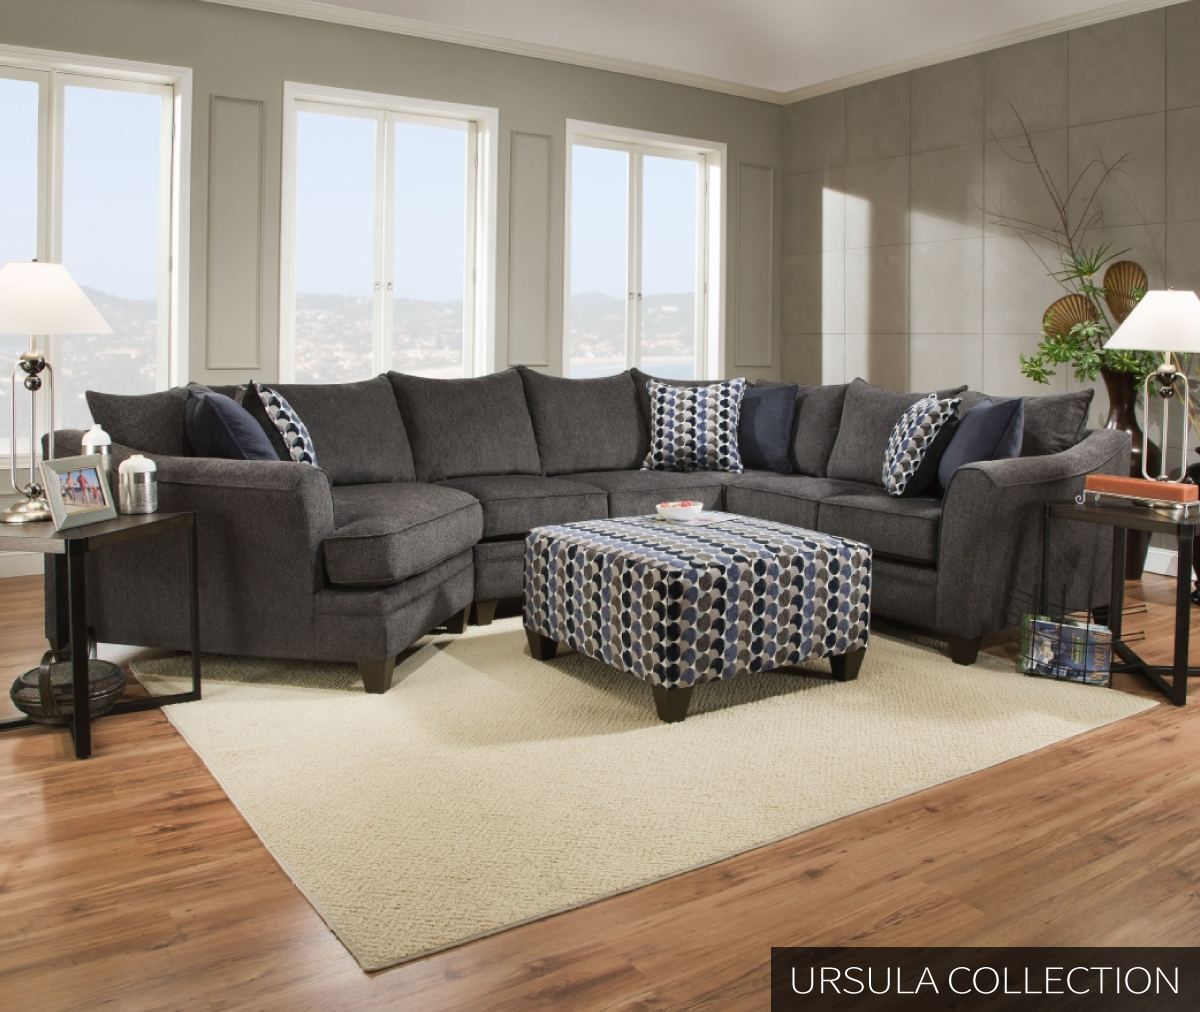 Living Room Furniture Sofas Loveseats Tables Recliners Chairs